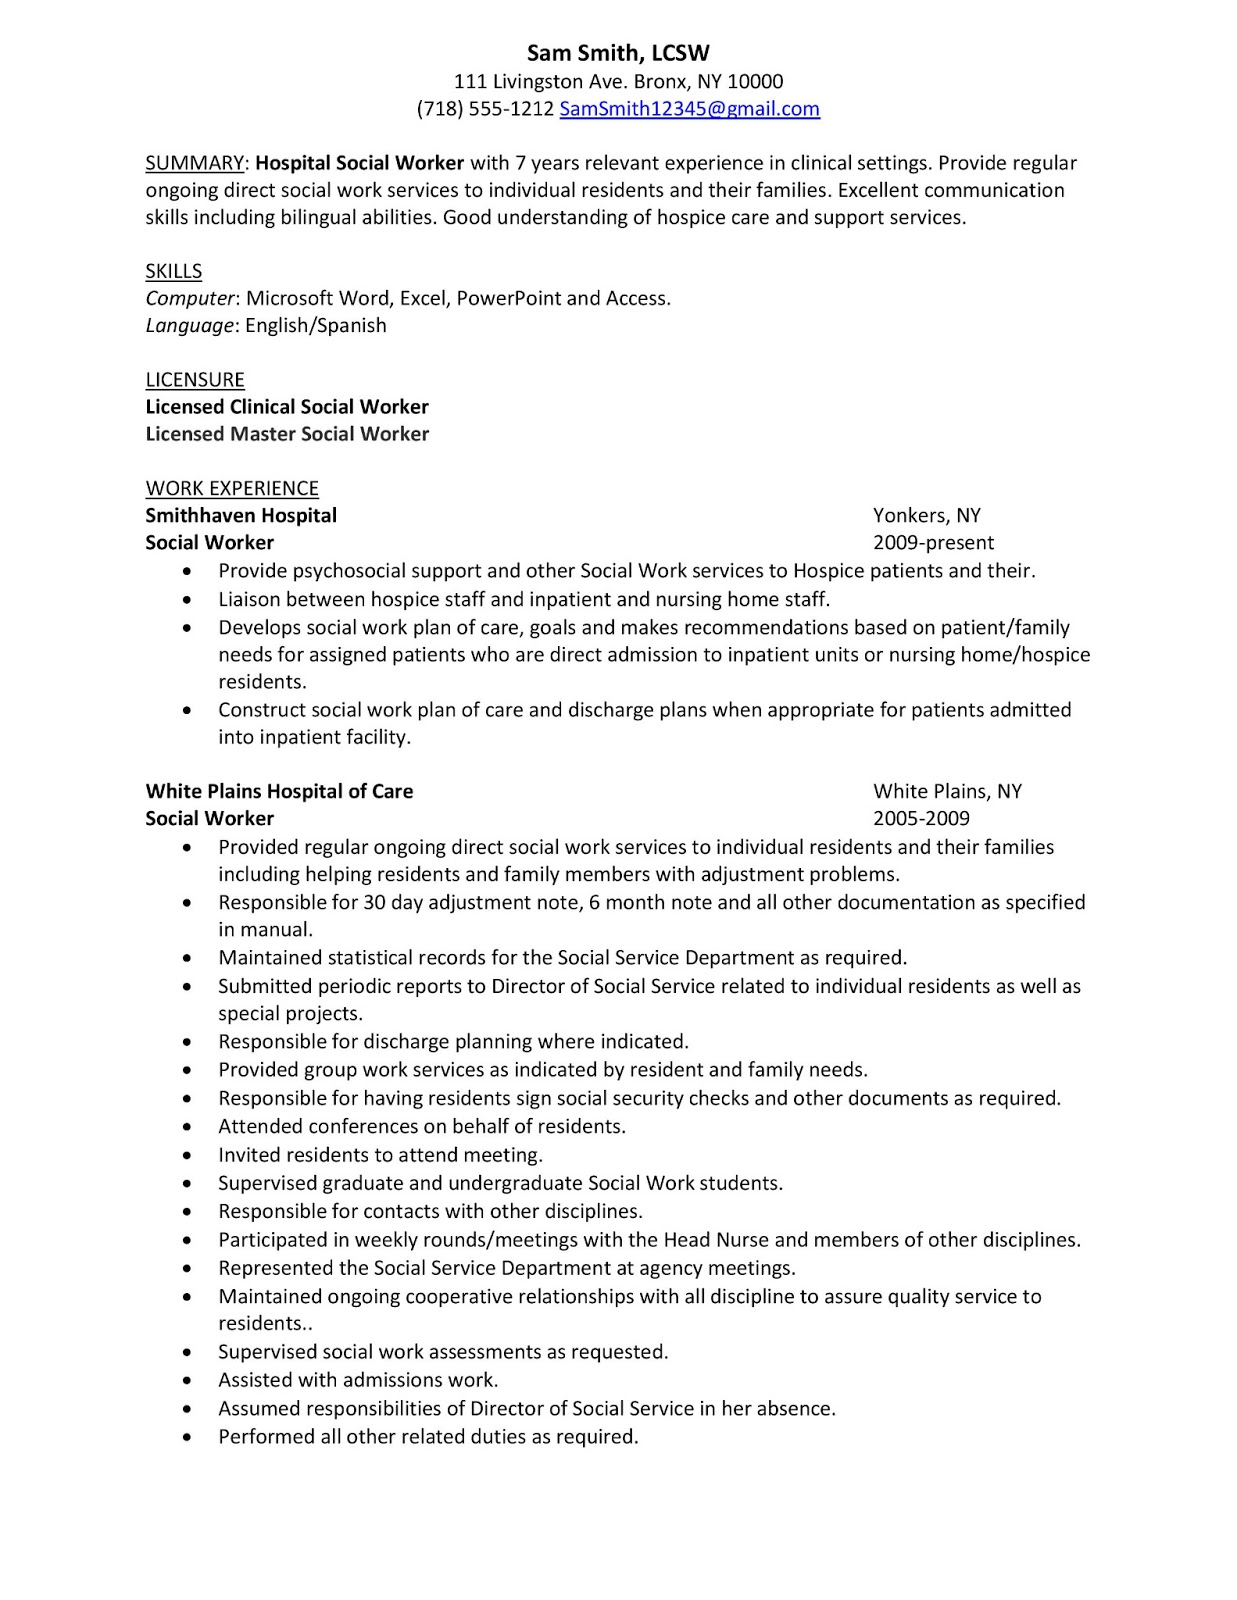 Nice Sample Resume: Hospital Social Worker Ideas Social Work Resume Examples